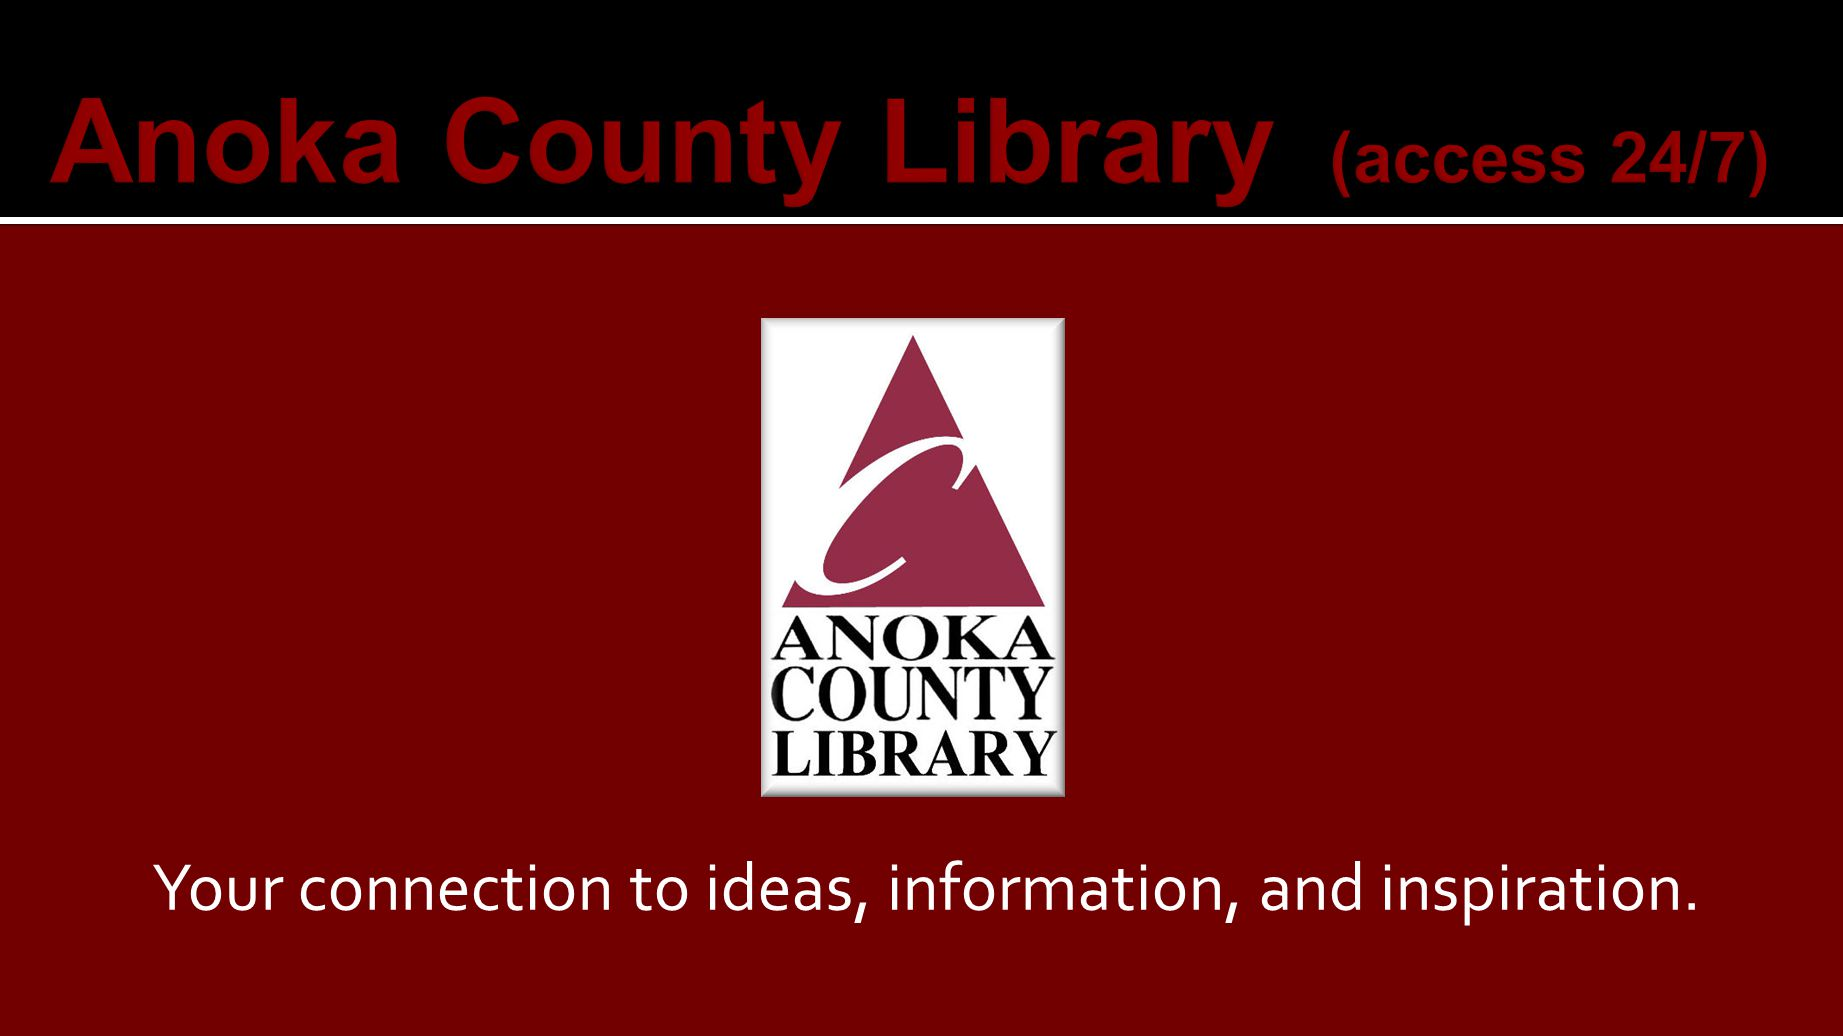 eBooks and many other resources are available with a valid Anoka County Library barcode and PIN and can be used 24 hours a day, 7 days a week at www.anoka.lib.mn.us Online Resources are funded by local and state tax money and state and federal tax revenues.